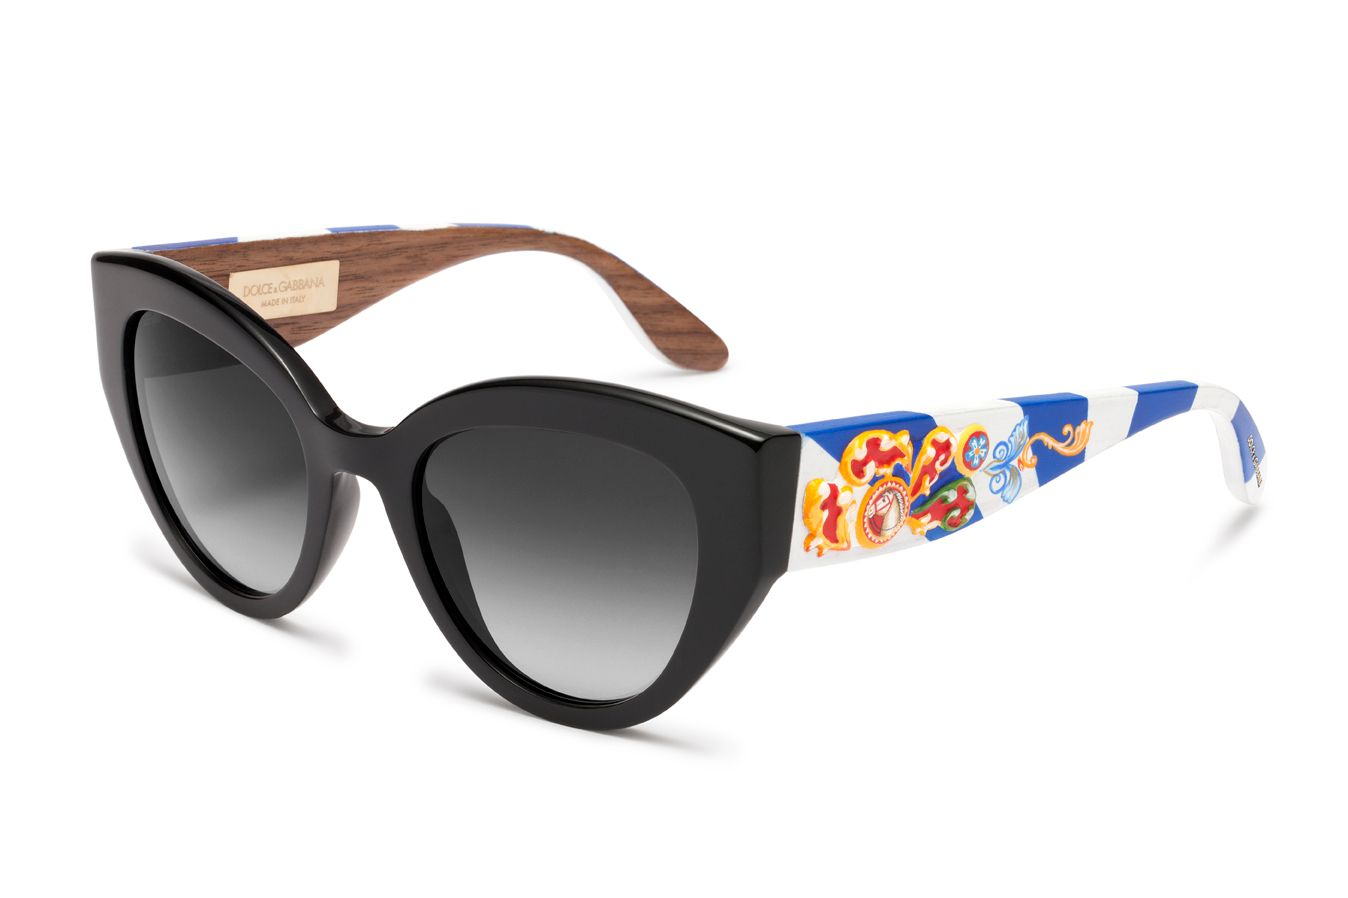 0bea69a4beb Treat Yourself Friday  A Pair of Luxe Sunglasses to Wear on Your Yacht